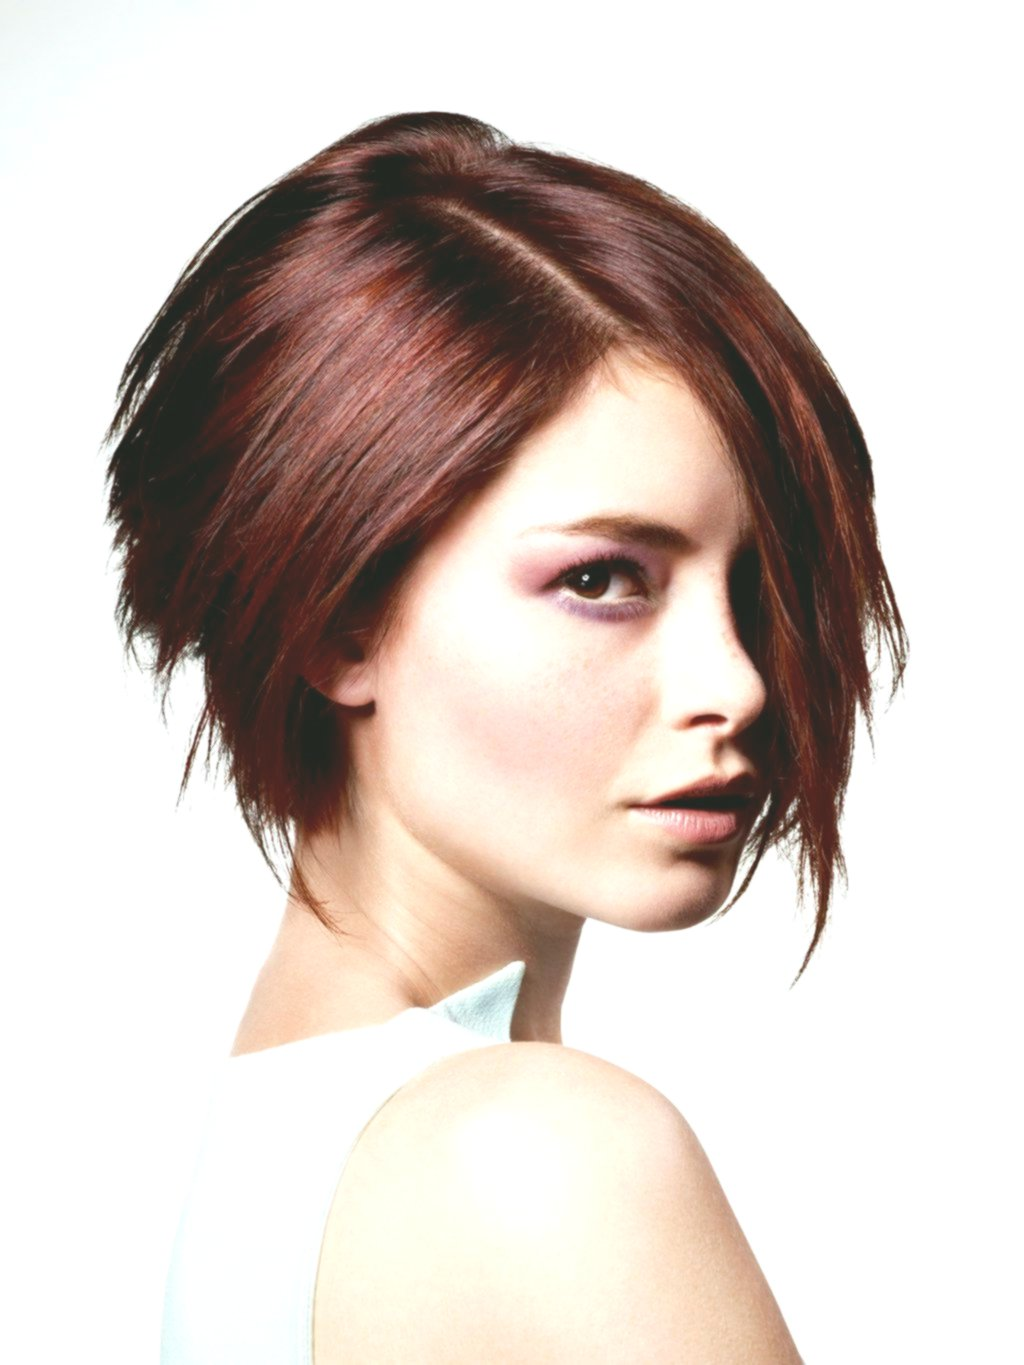 lovely elegant hairstyles concept cool Elegant hairstyles photography